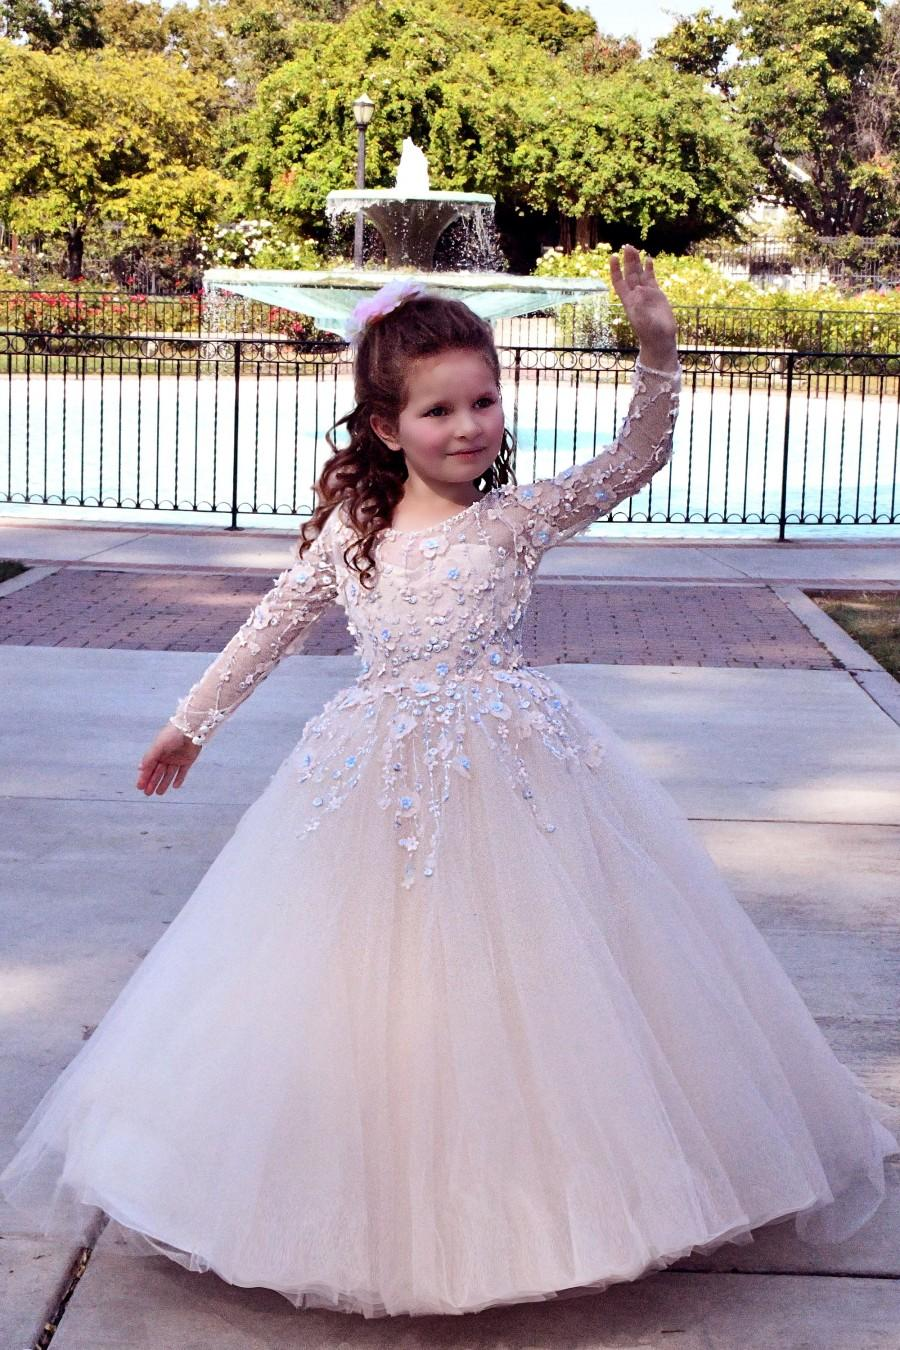 Wedding - First Communion Baptism Flower girl dress long sleeve Tutu Princess Birthday girls wedding party Toddler